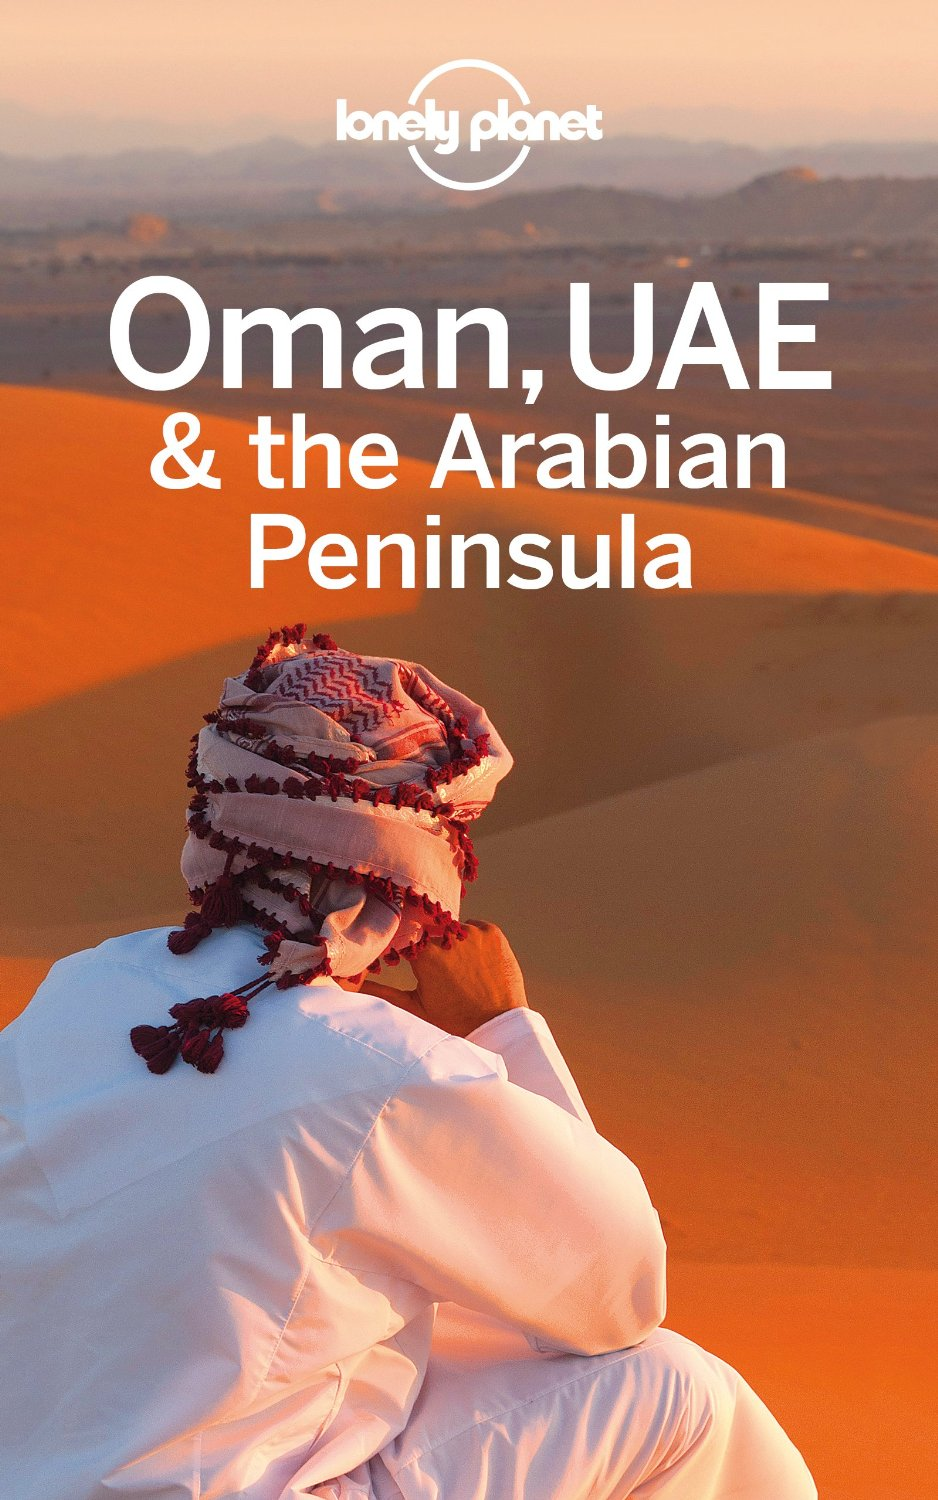 Lonely Planet Oman, UAE & Arabian Peninsula (Travel Guide) free download